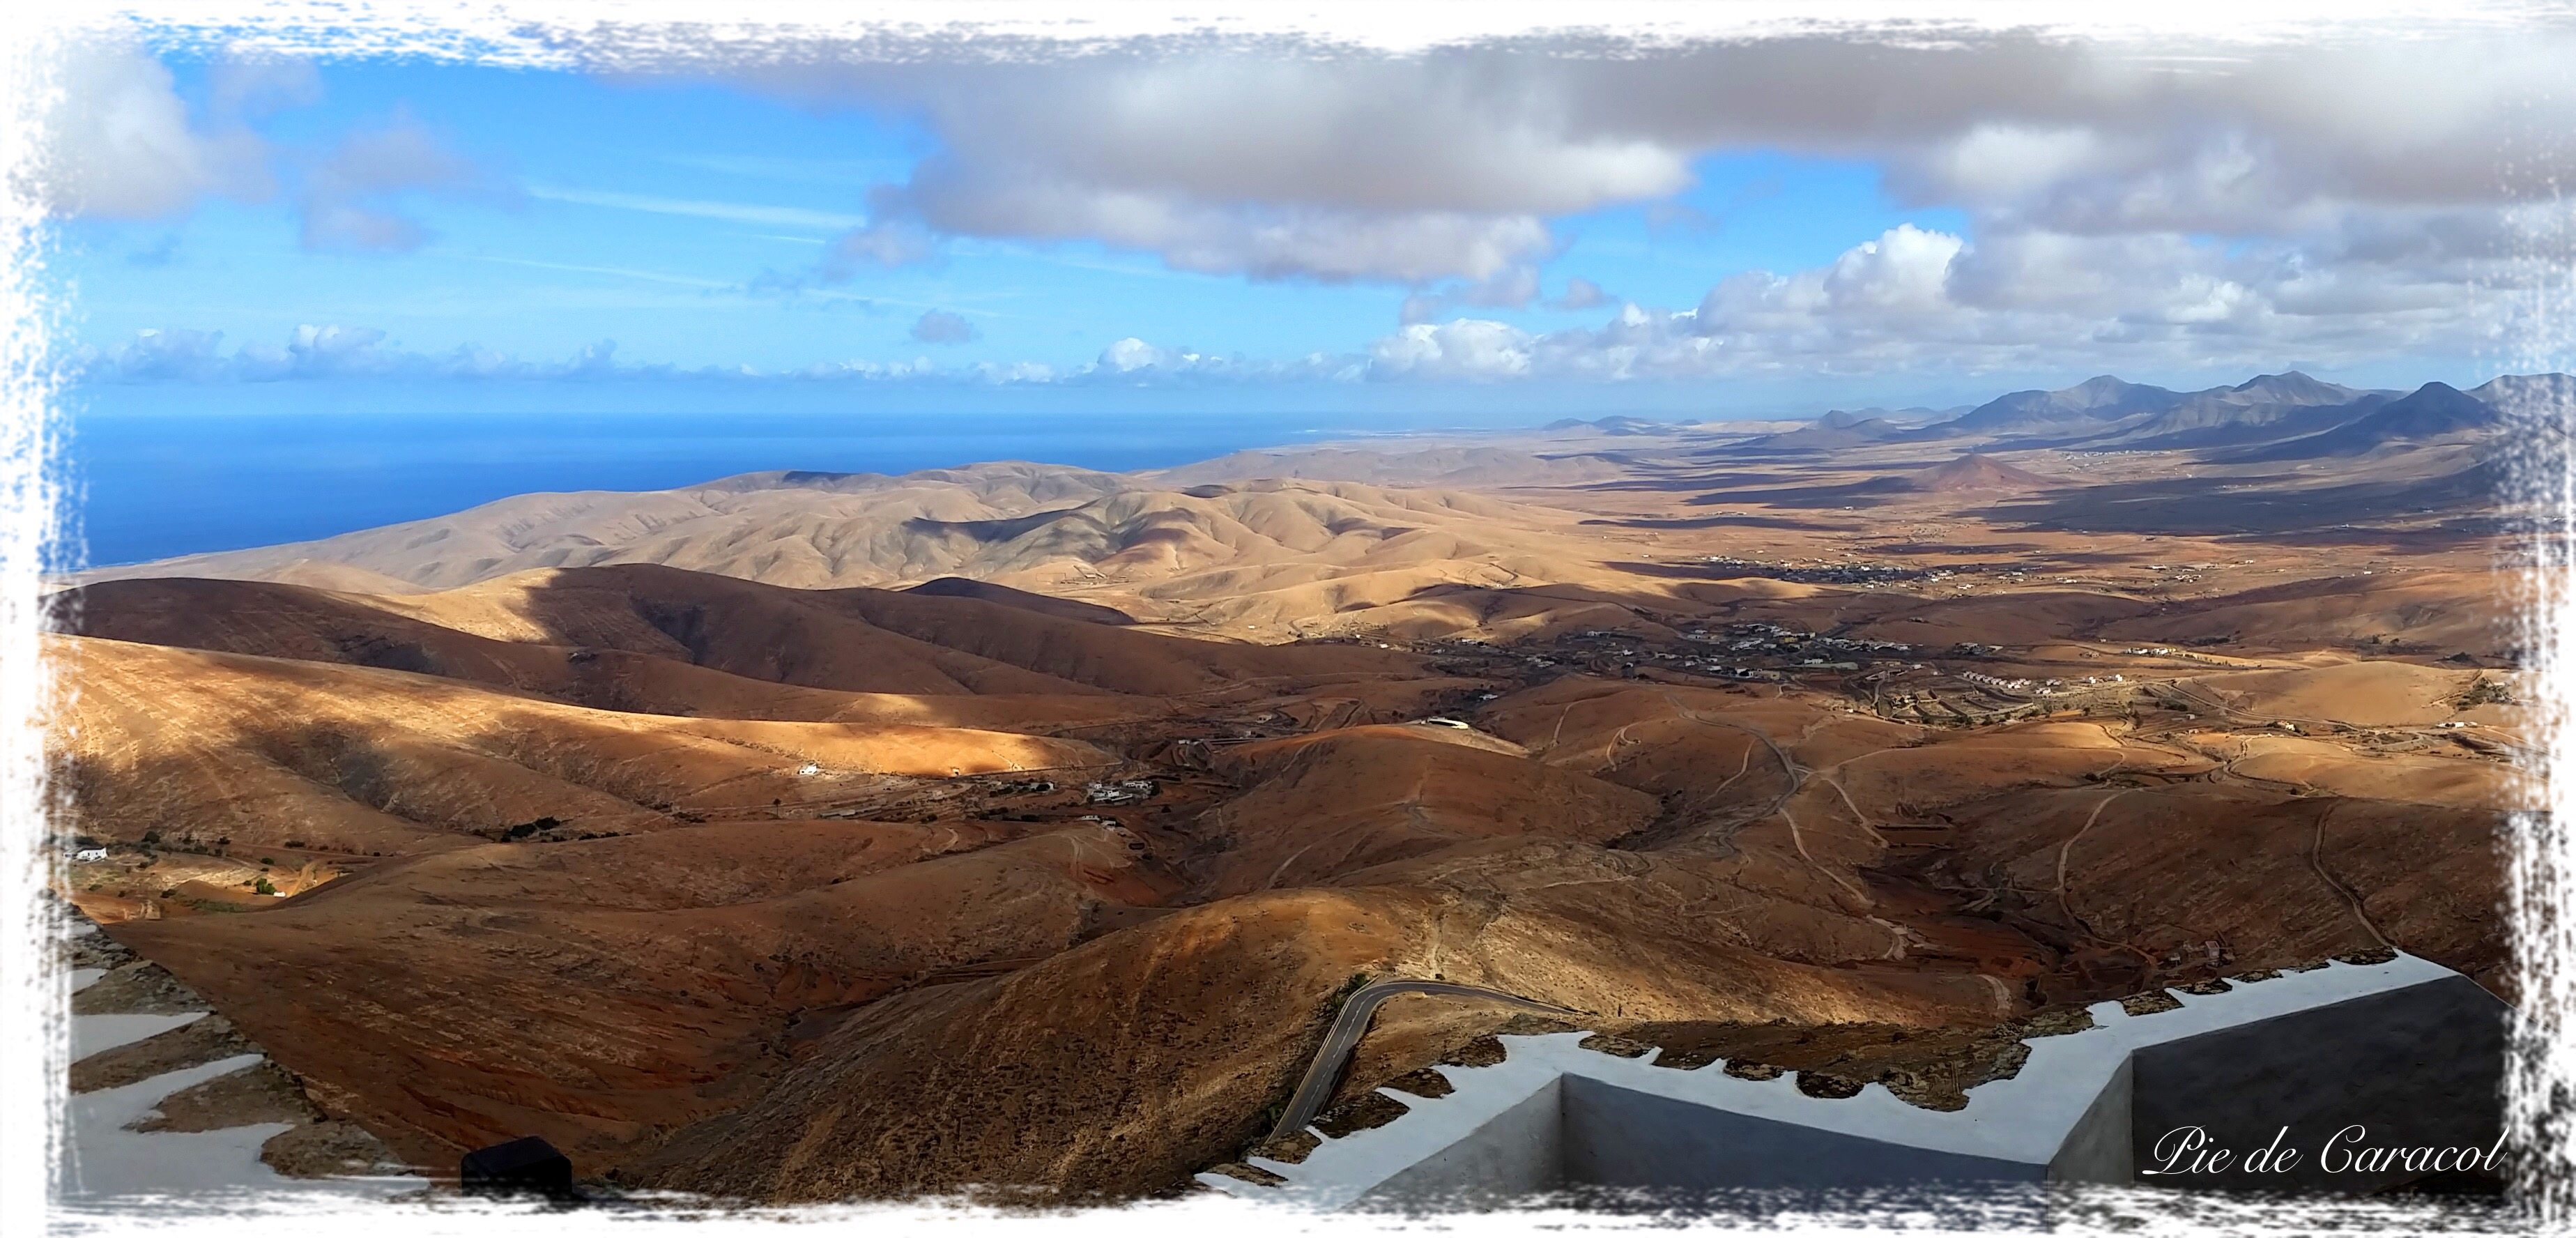 Panoramic Tour with Pie de Caracol, Fuerteventura